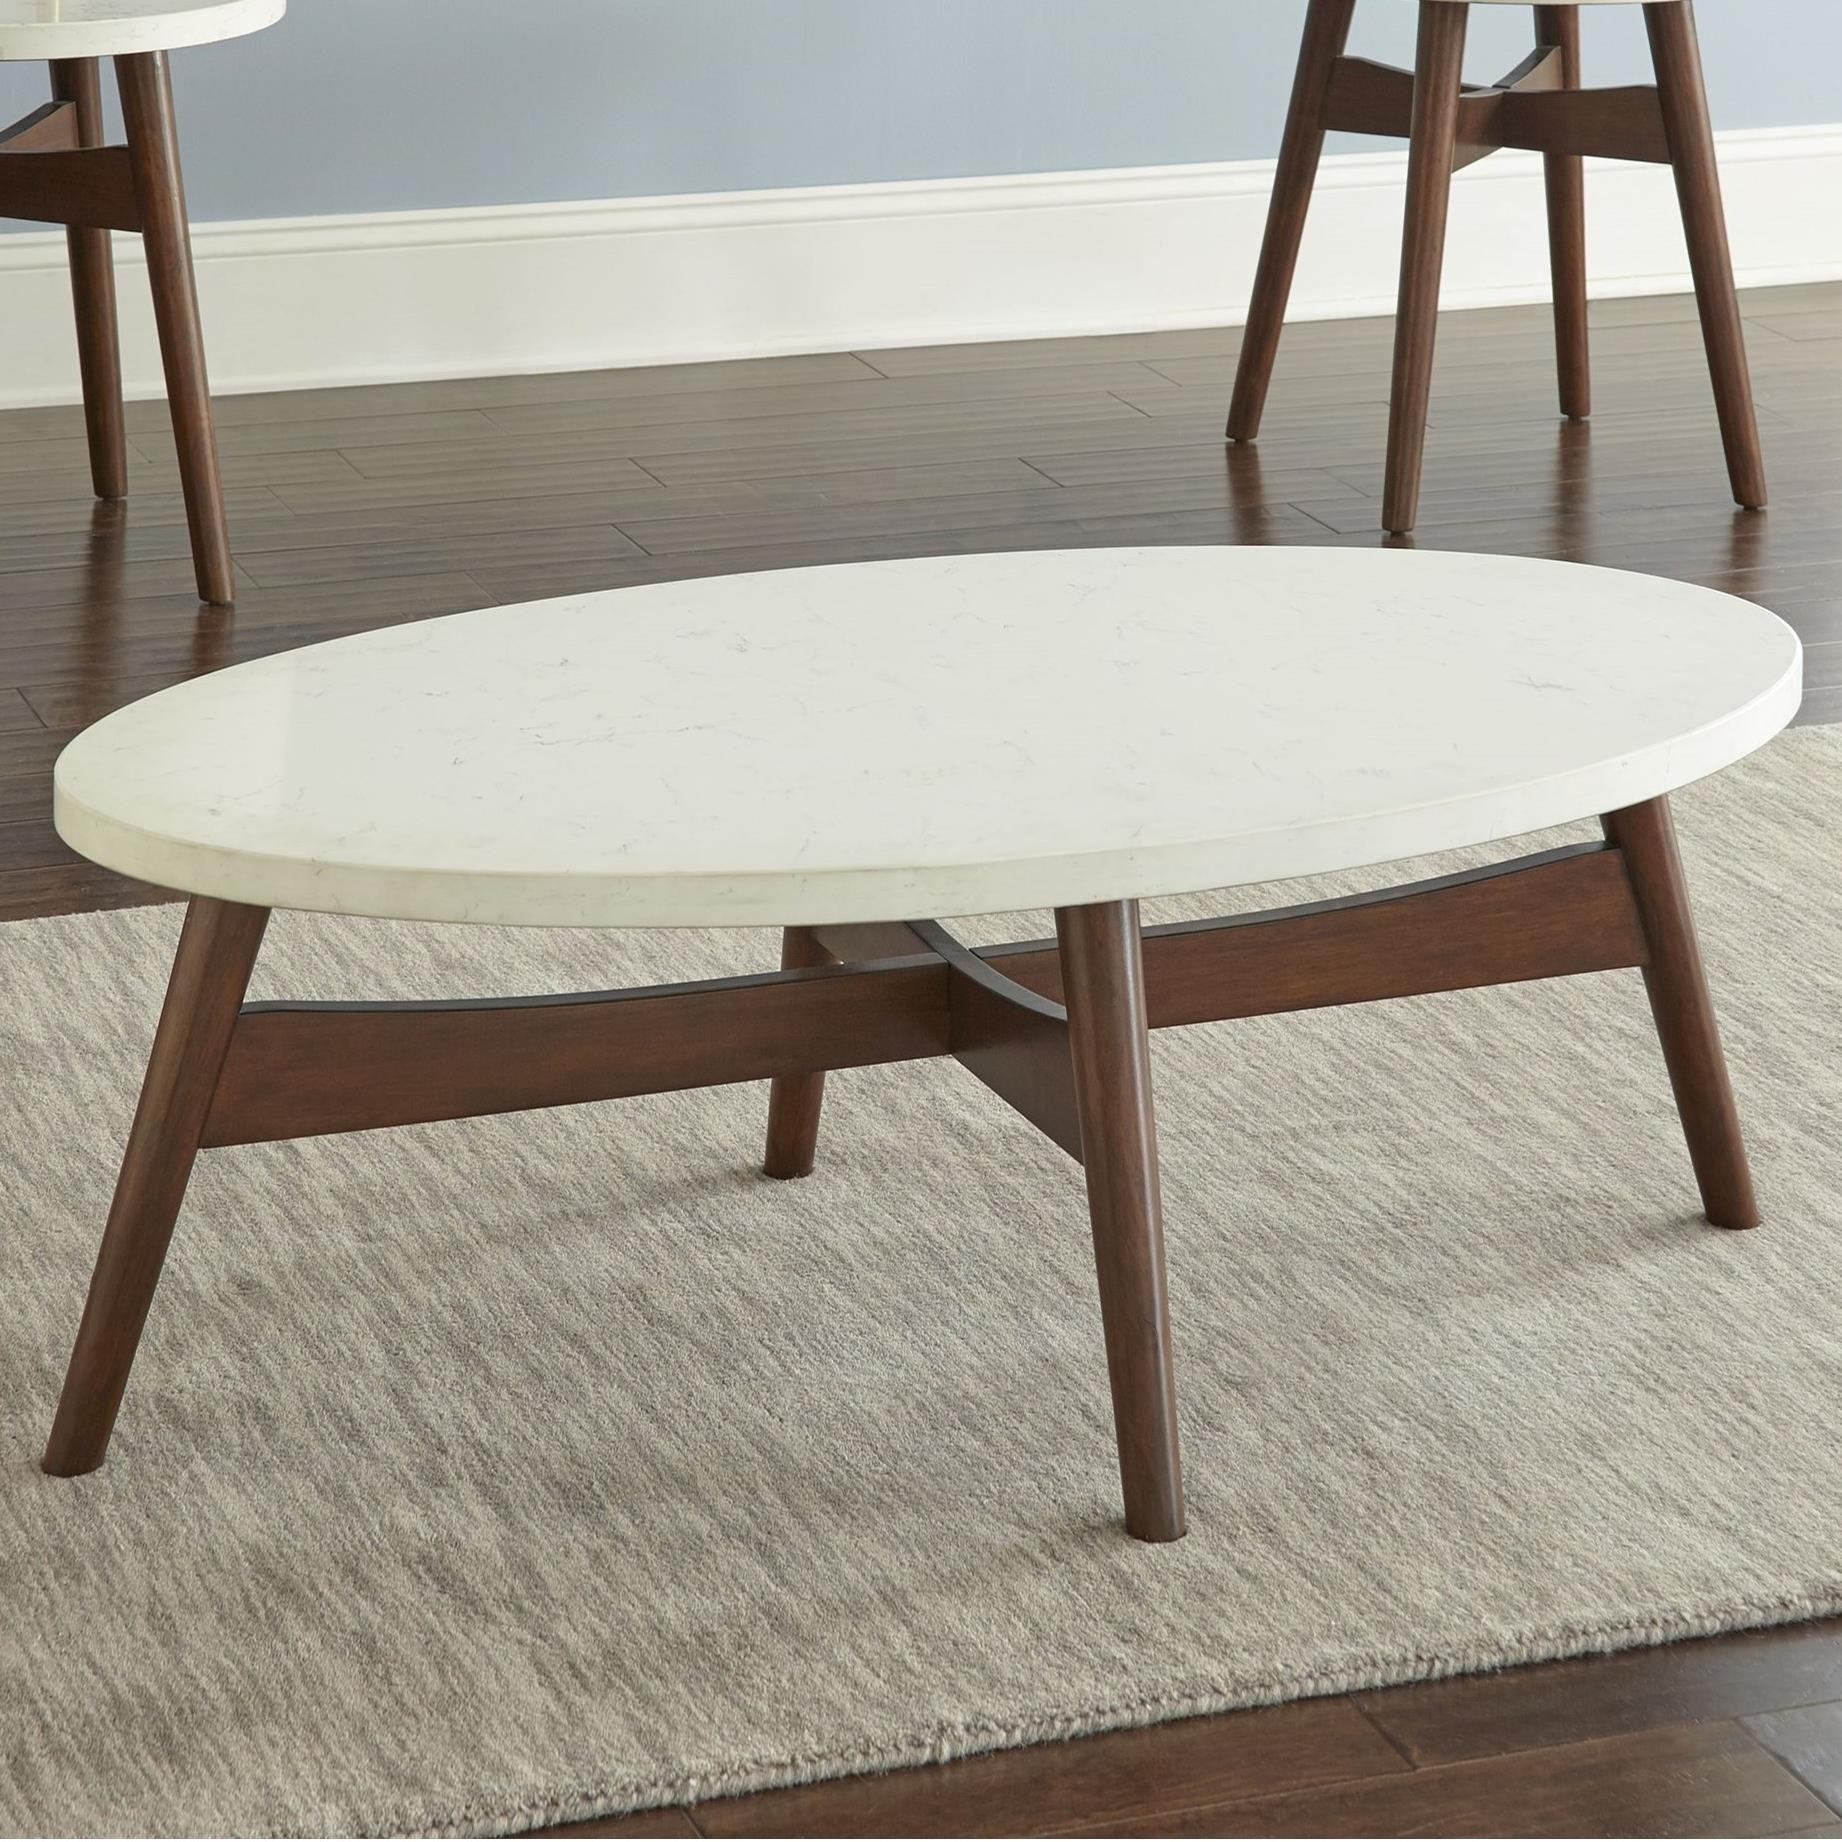 Serena Silverstone® Oval Cocktail Table by Steve Silver at Darvin Furniture